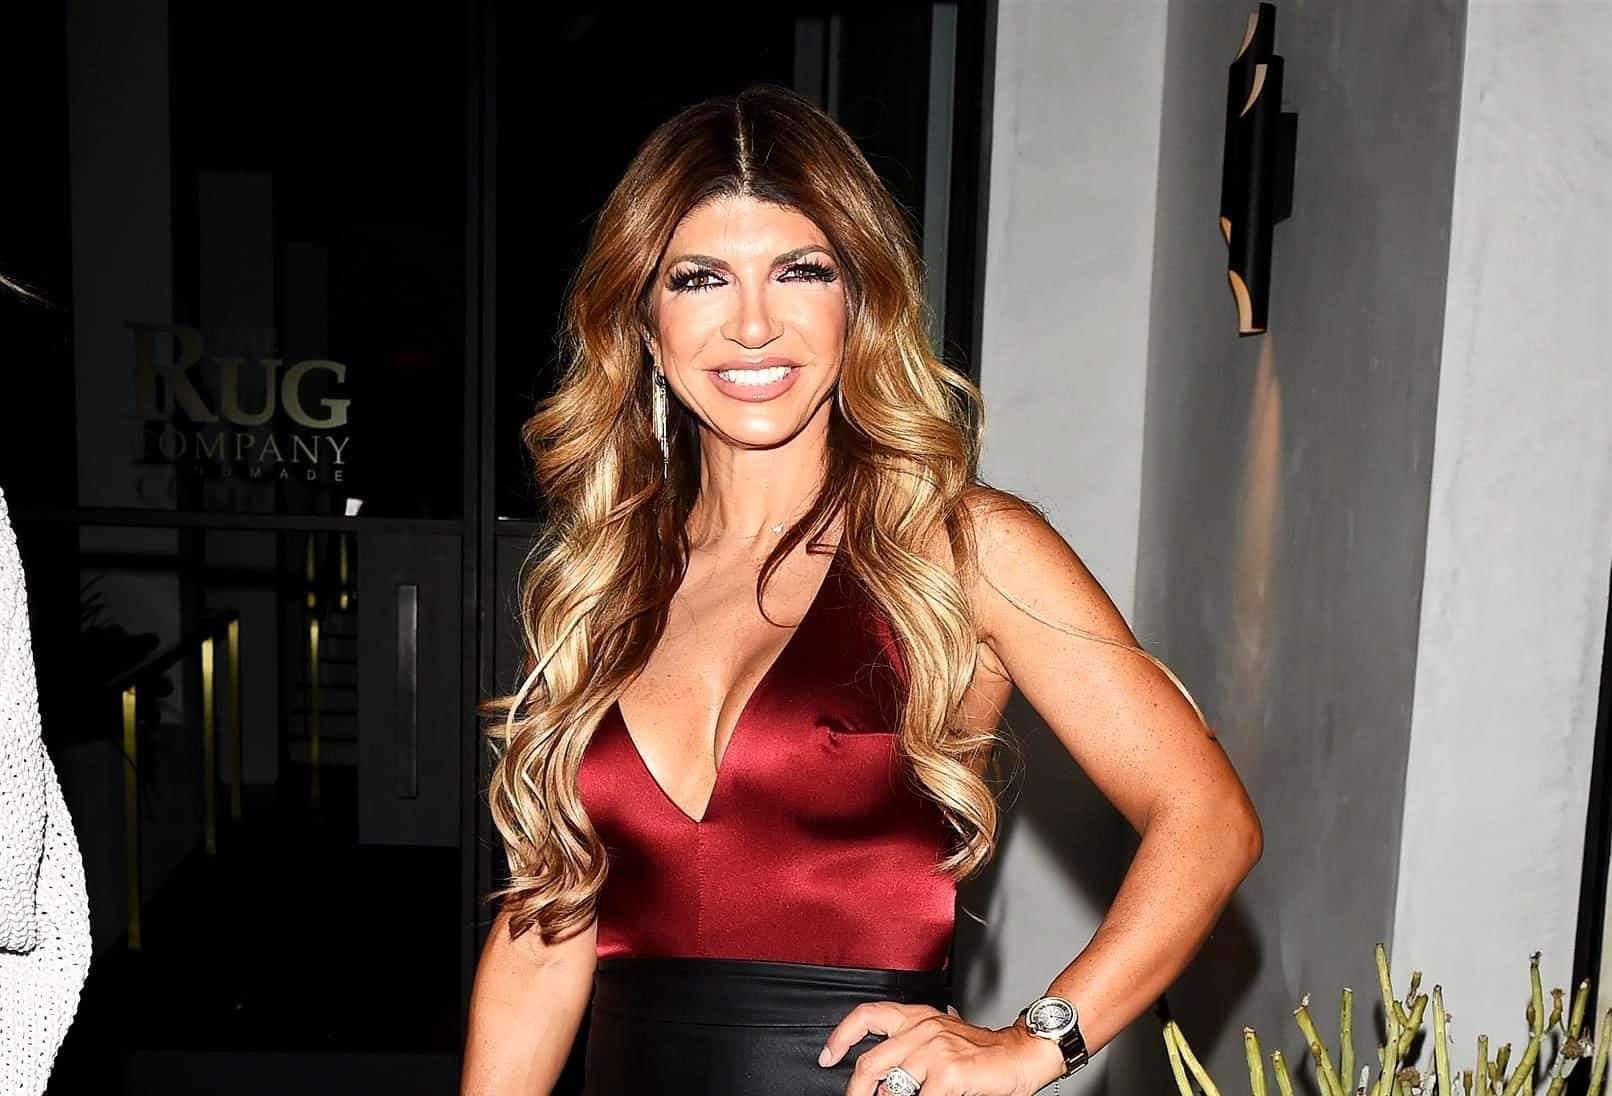 Teresa Giudice Spotted with Much Younger Man - Her Lawyer Tells Real Story!